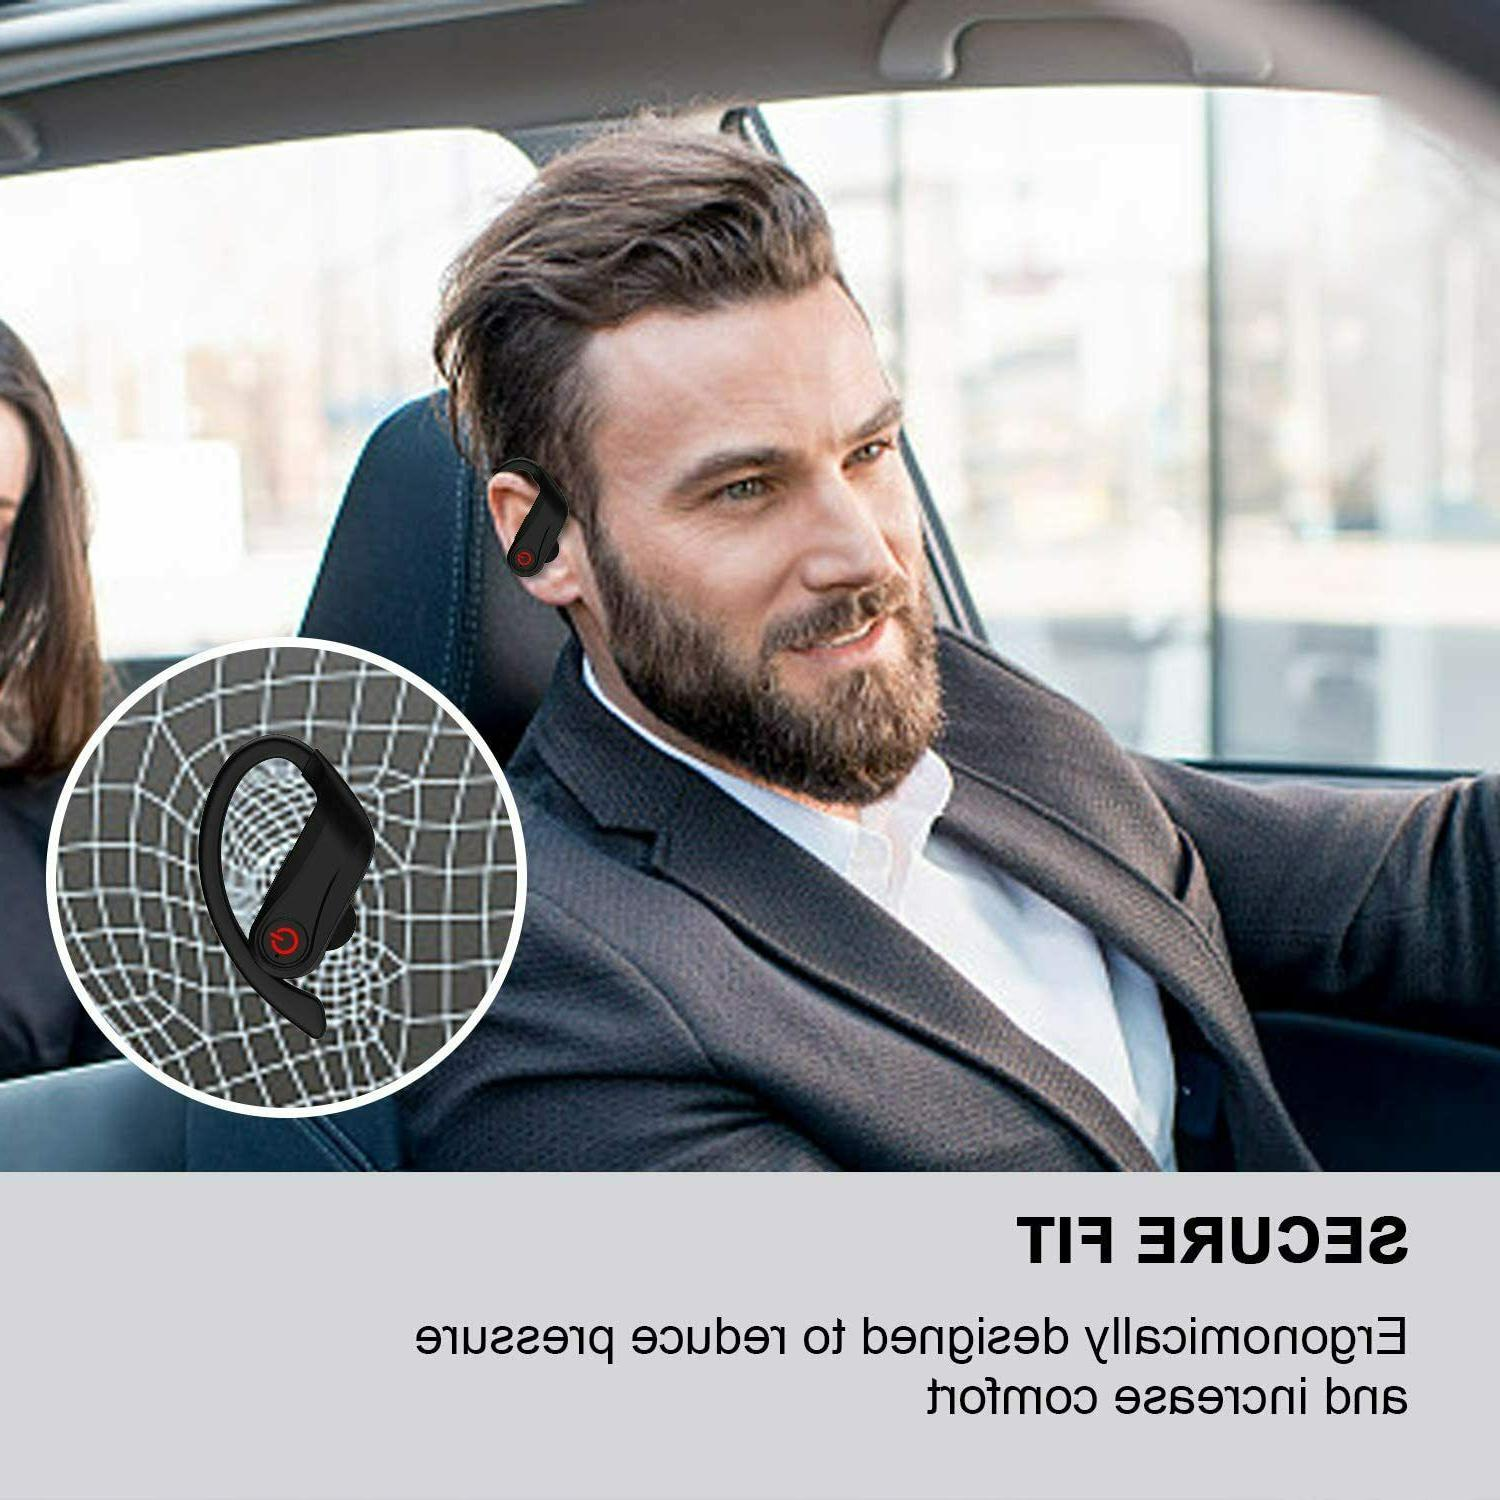 Wireless Earbuds,TWS Bluetooth Earbuds with 950mAh Case